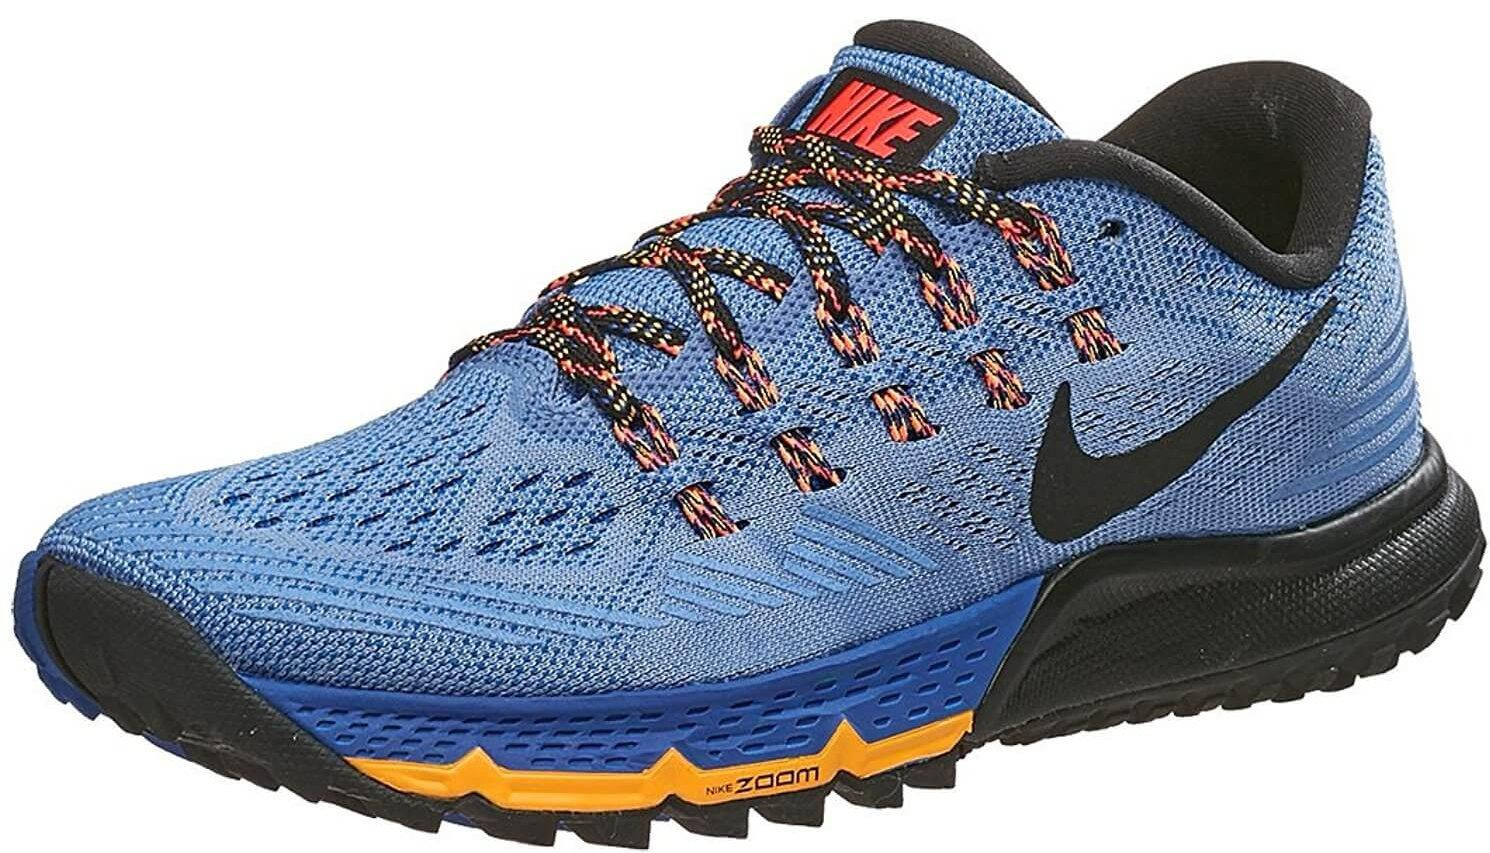 2f33337a969 Nike Air Zoom Terra Kiger 3 - To Buy or Not in May 2019